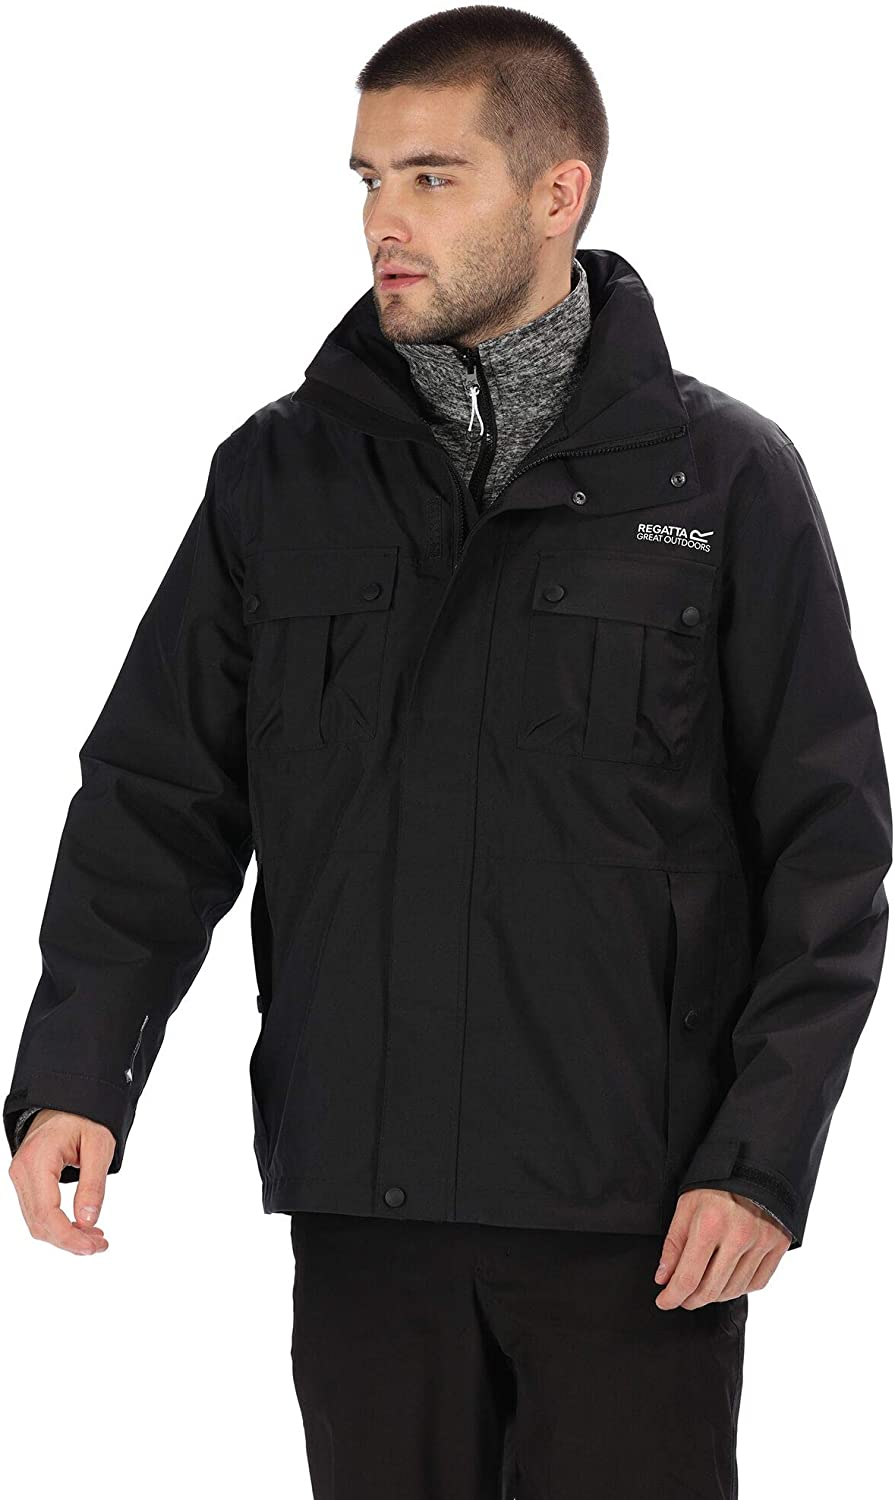 Regatta Indefinitely Mens Northton III 3 In Jacket Hood Concealed Max 48% OFF With 1